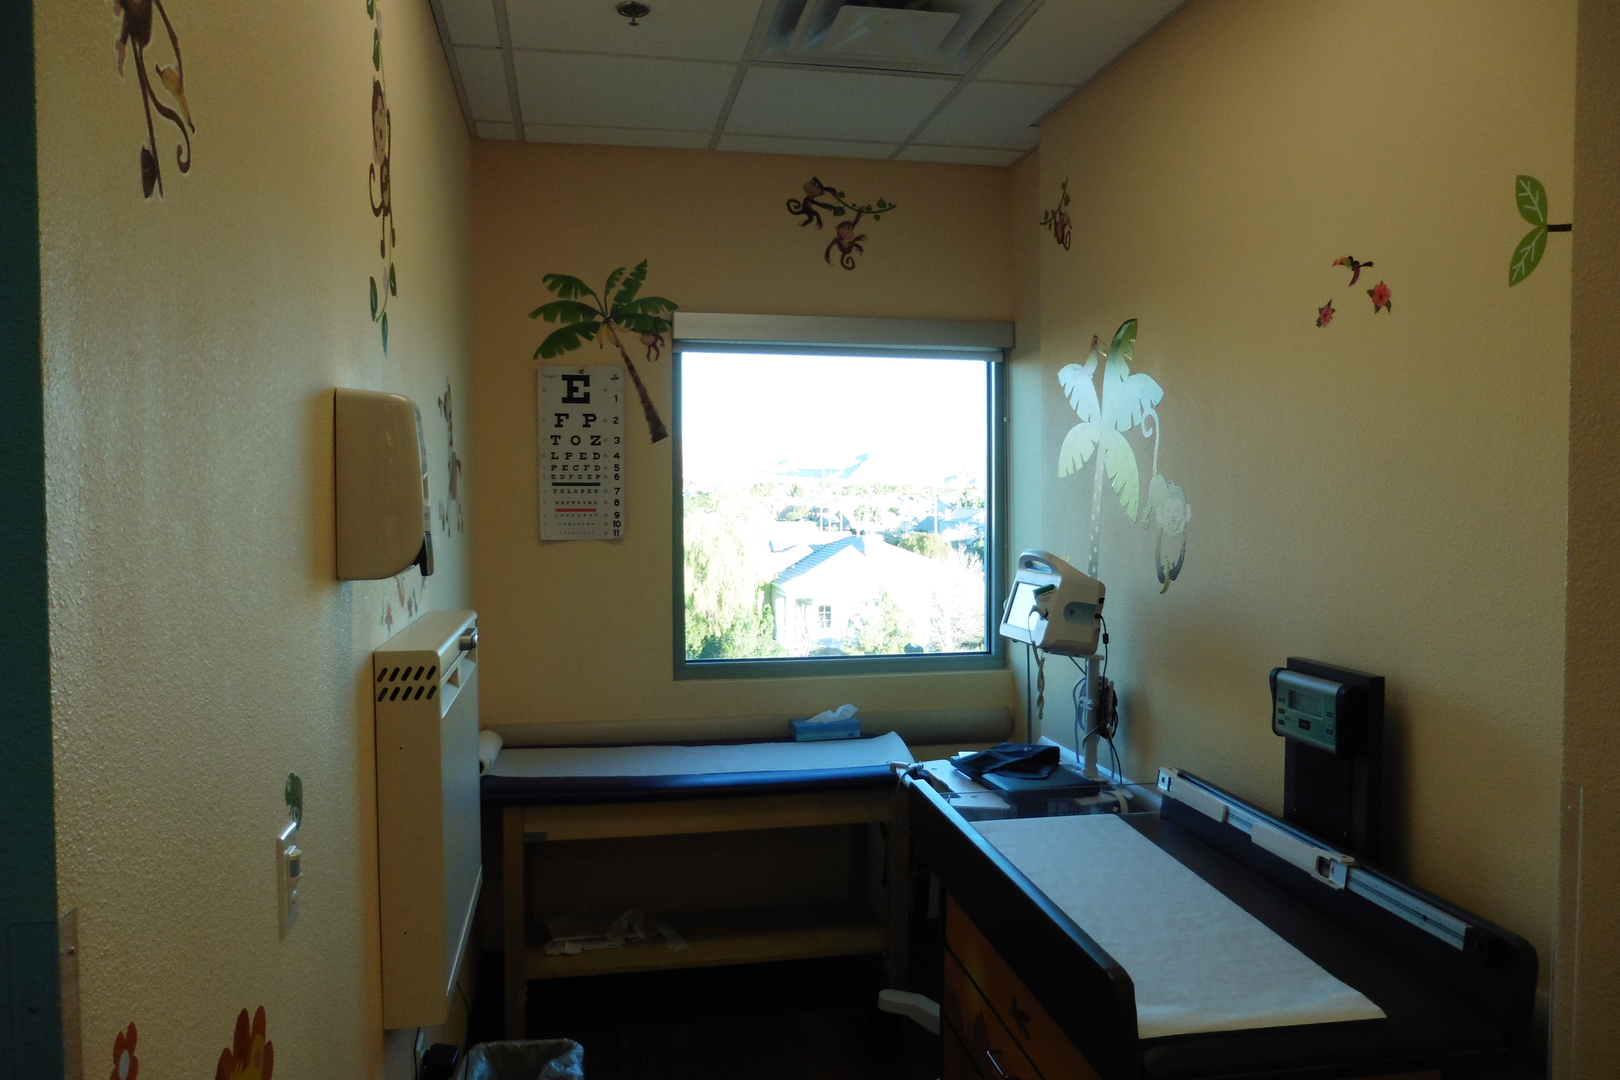 Desert Valley Pediatrics in Las Vegas, Nv